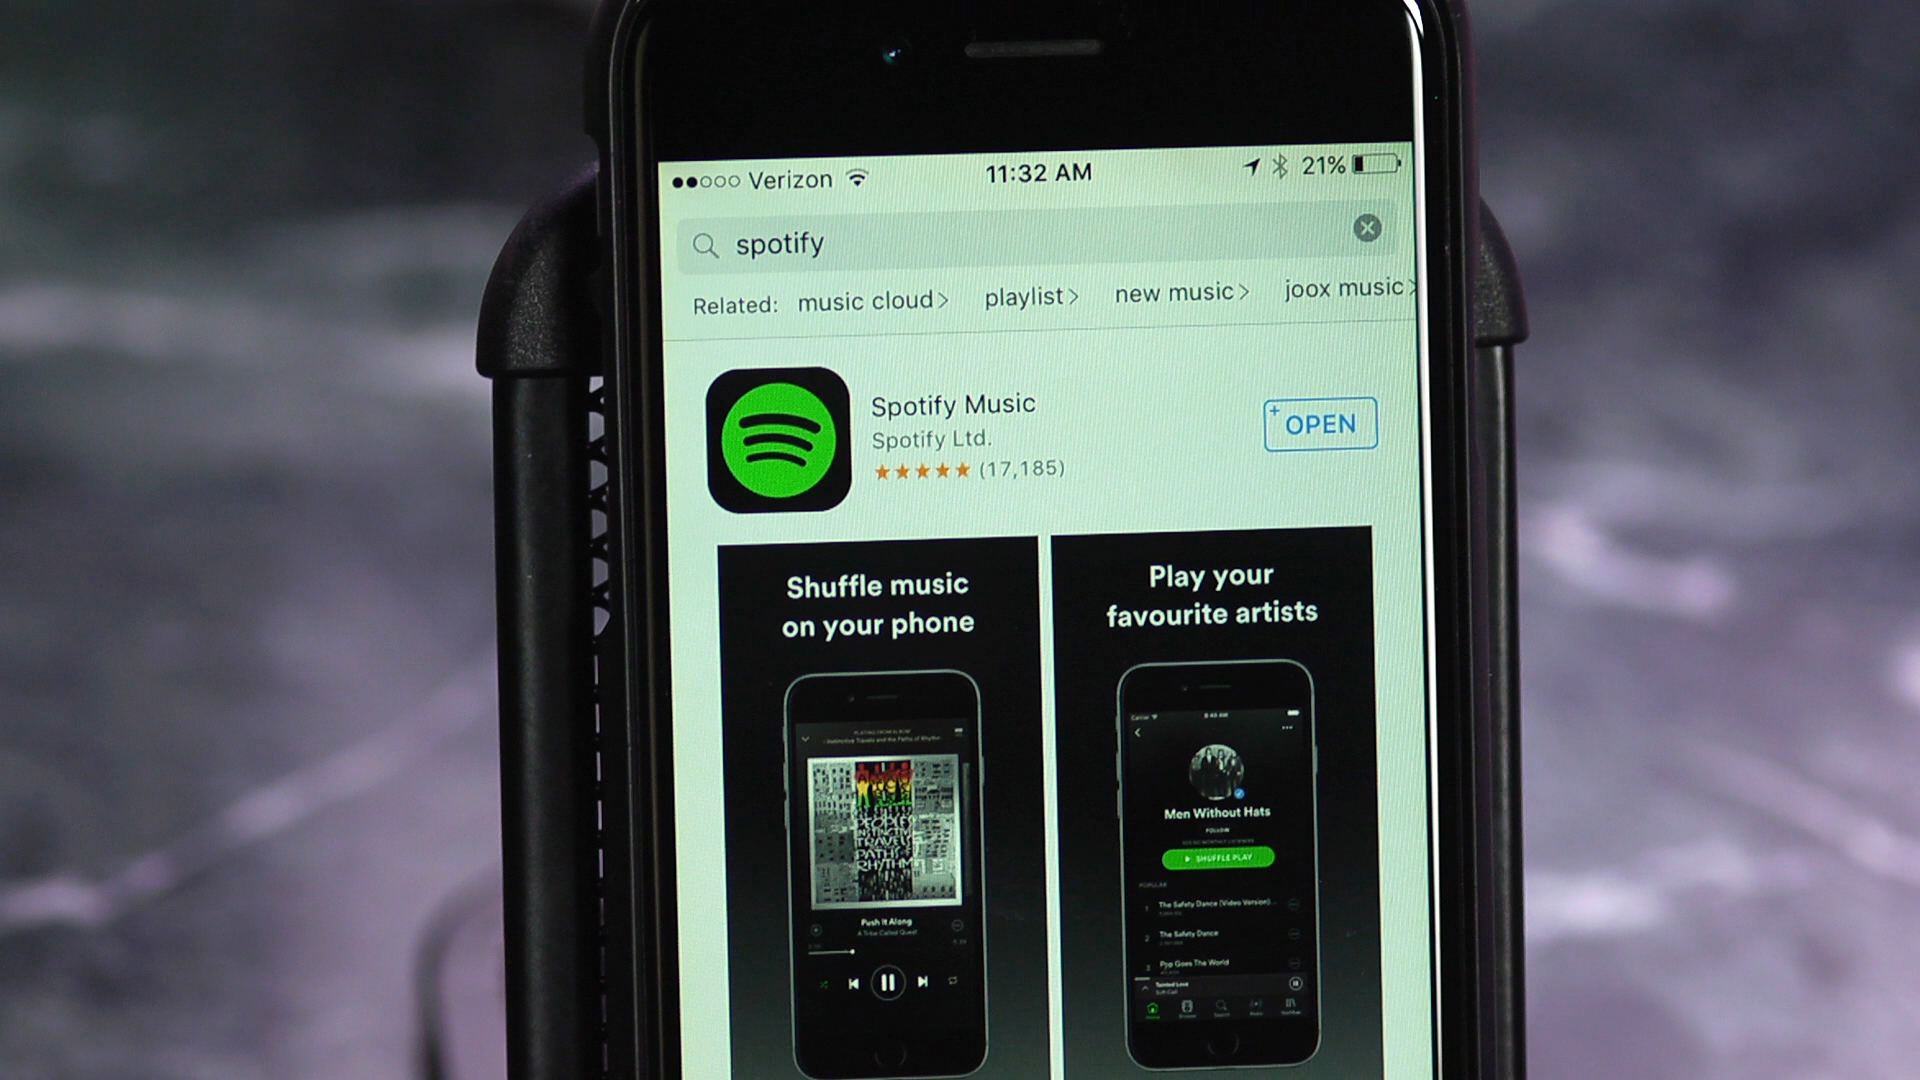 Video: Spotify and Apple in an App Store spat, says report